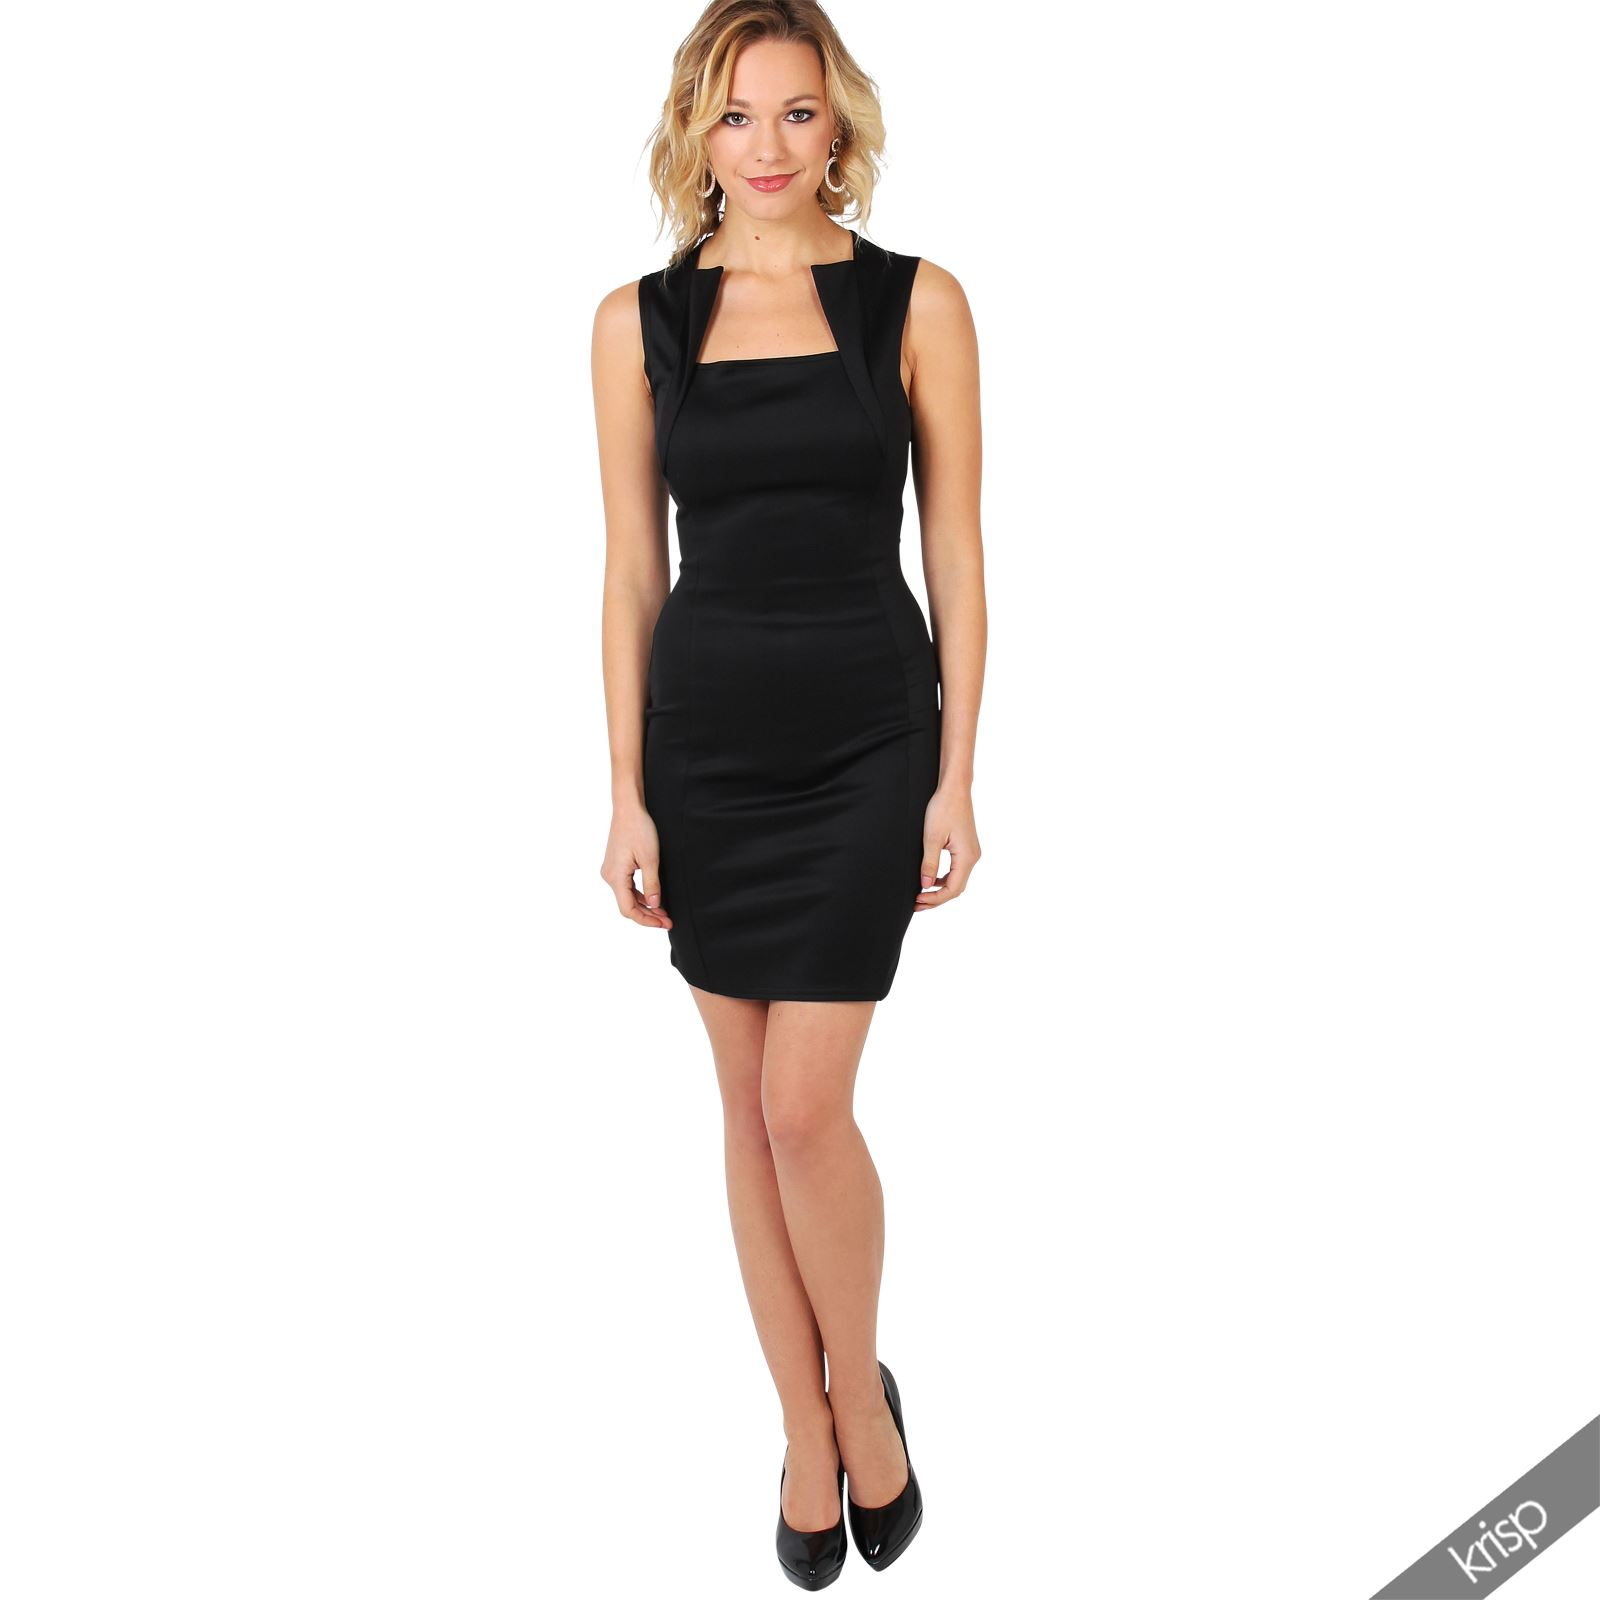 Ladies-Fashion-Bodycon-Dress-Sleeveless-Backless-Party-Fitted-Cocktail-Pencil thumbnail 3